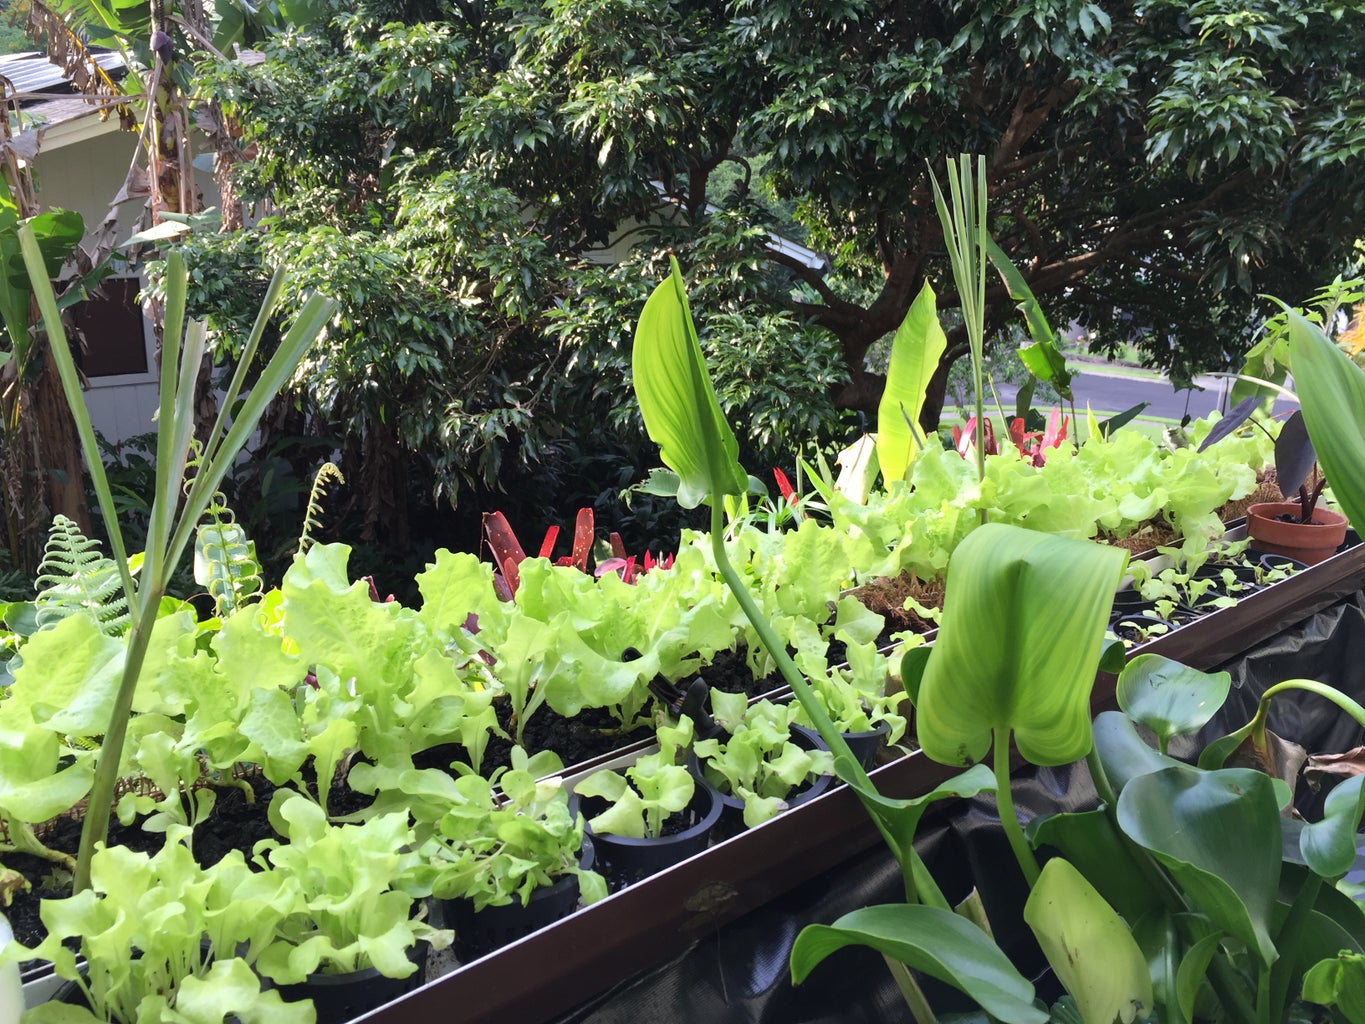 Transplanting and Arranging the Plants